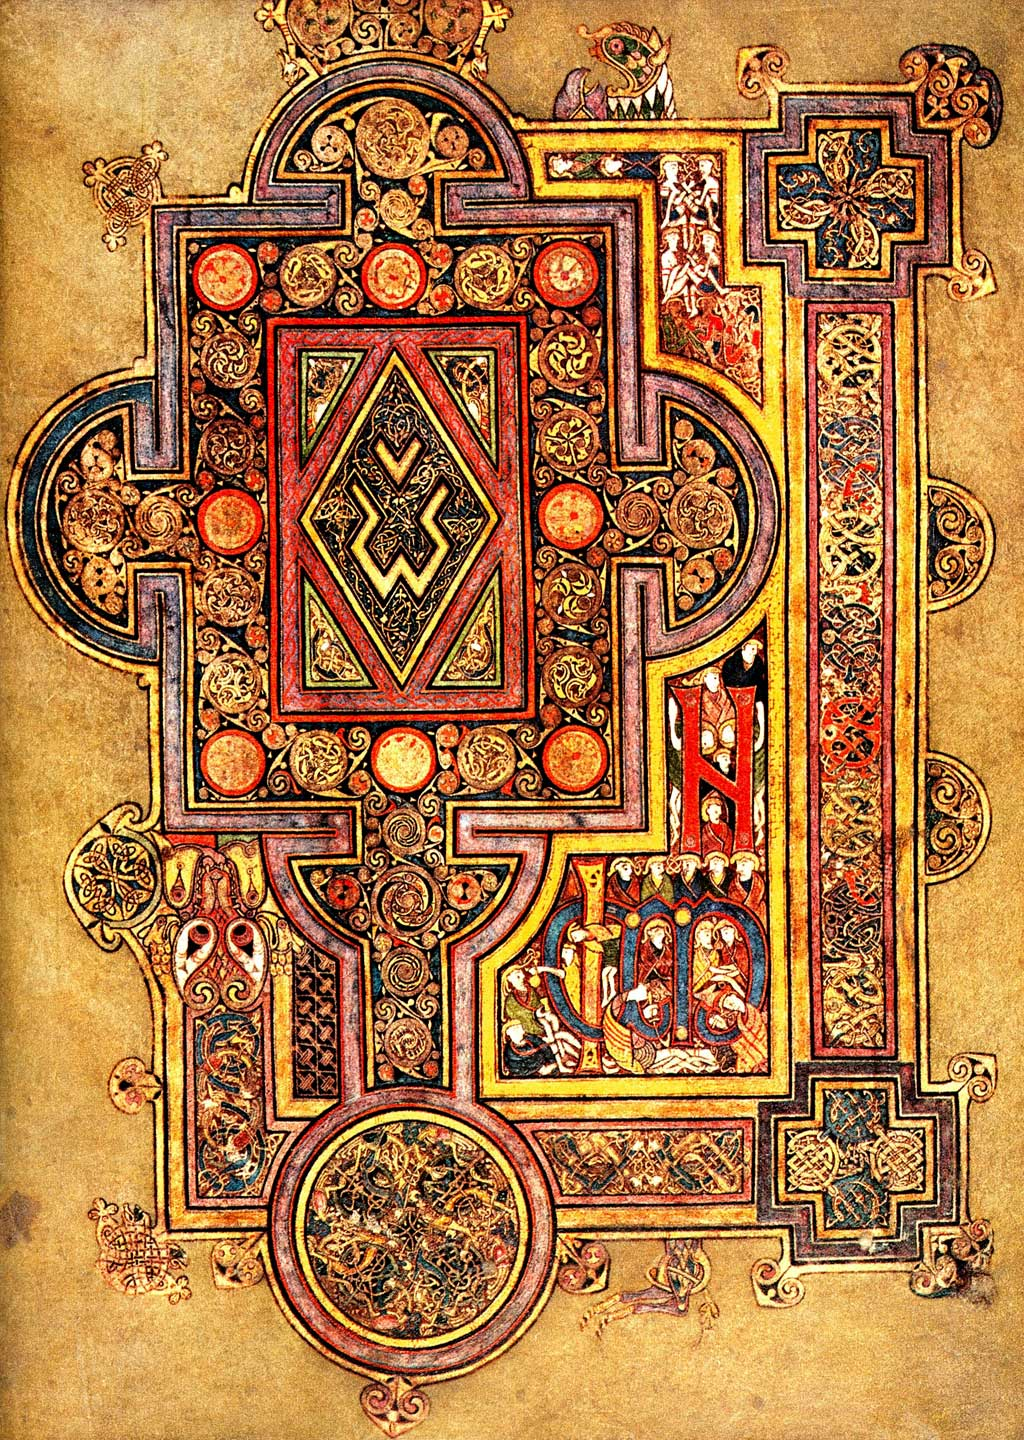 an analysis of the book of kells a celtic masterpiece Arguably, the most notable masterpiece of medieval art is the incomparable book of kells, a 680 page latin manuscript of the four gospels while most illuminated manuscripts were designed for use by missionaries – the shorter text was easier to carry – the book [.